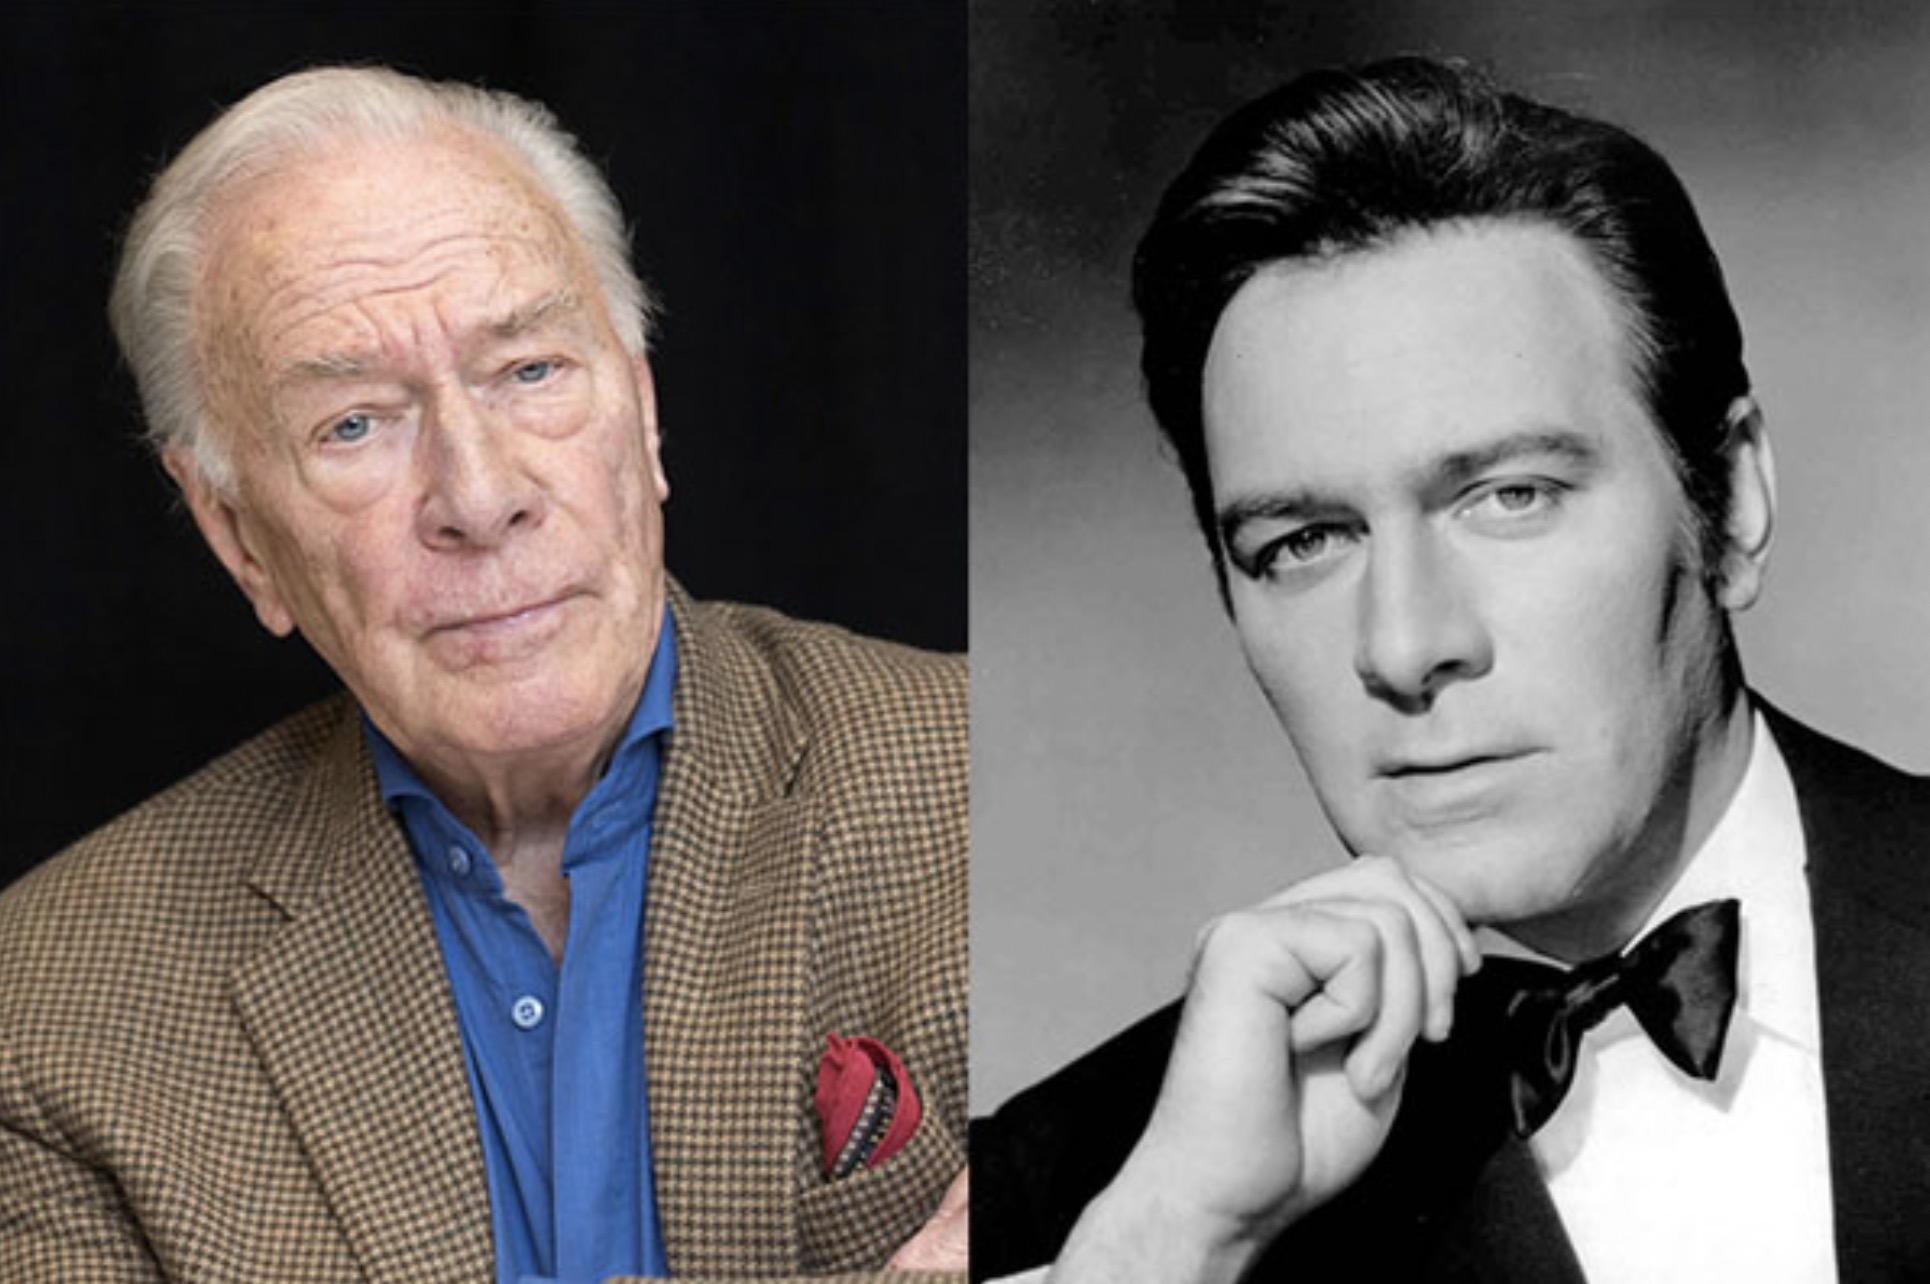 CHRISTOPHER PLUMMER 88 YEARS OLD